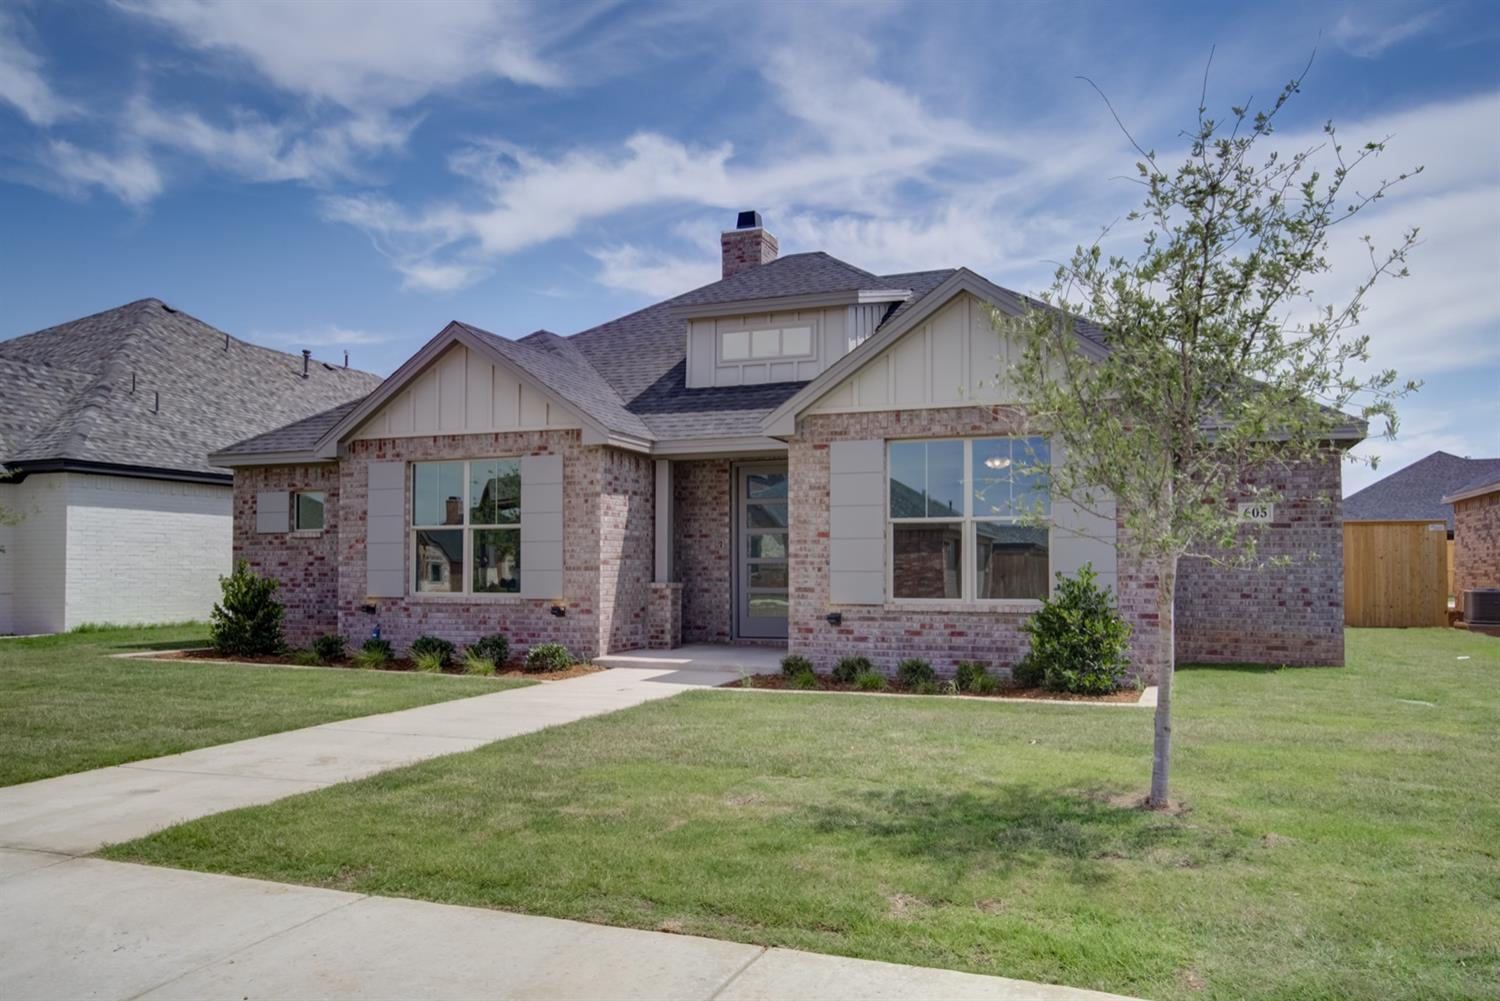 This delightful Apex Construction property is welcoming, with its abundant natural lighting and shaded entrance. The special ceilings, stunning floors, and high quality finishes create an ambience of luxury and comfort, because we know that your home should be a reflection of your great tastes  Apex Construction prides itself in hard work and customer service, because they truly value the people that they work with. With years of construction experience, customers will feel valued and listened to as they work side by side with our team to design their dream home.